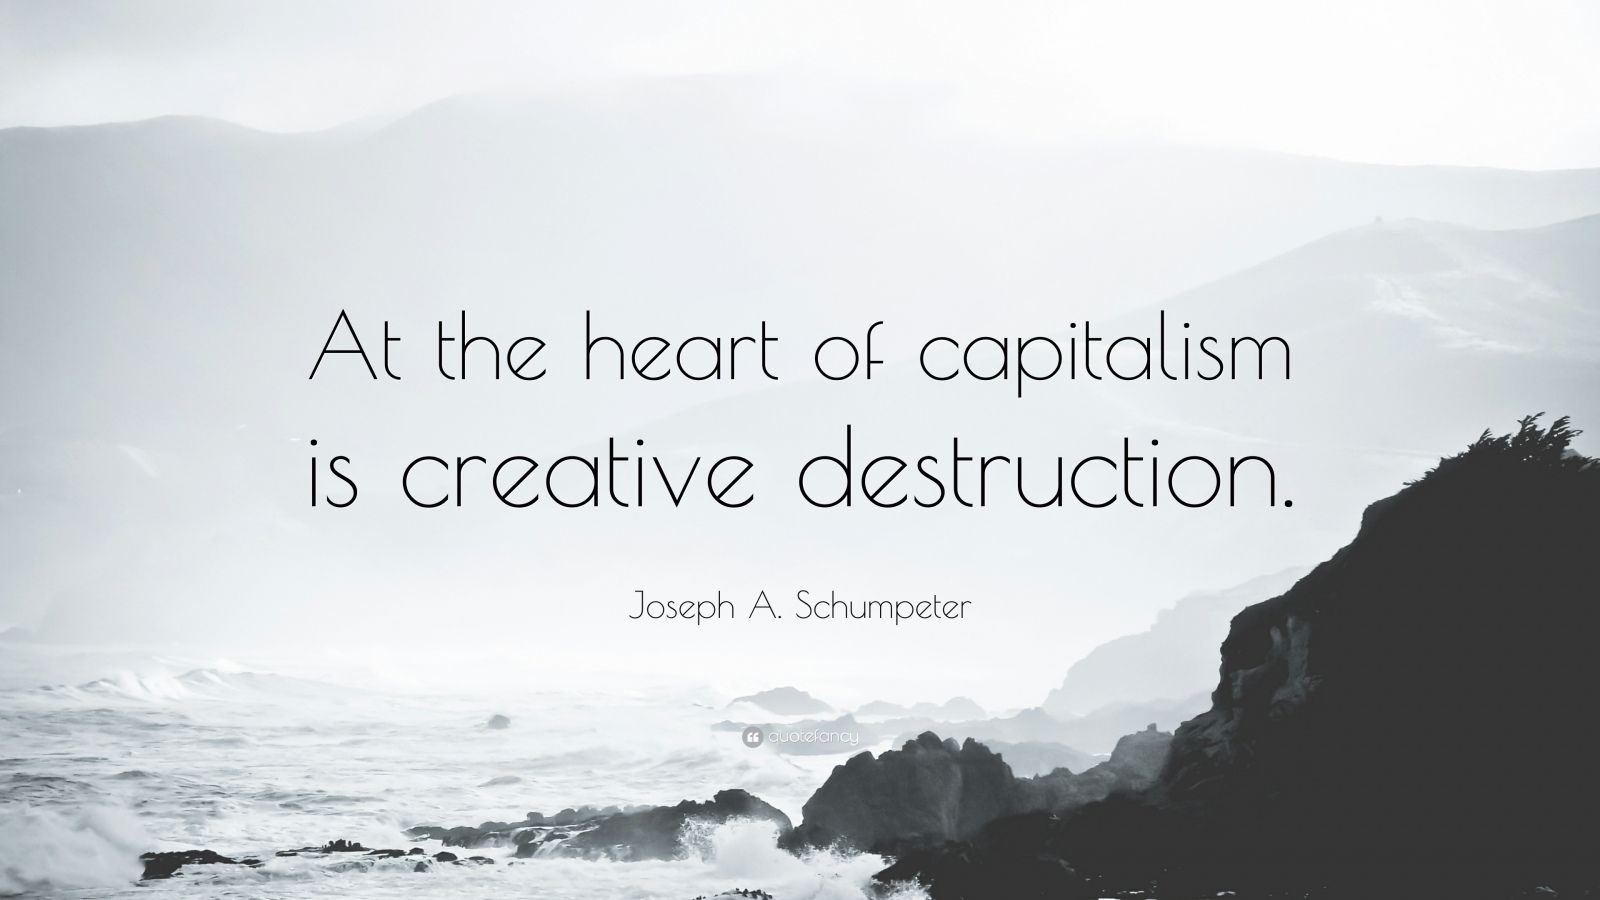 creative captialism Creative writing is any writing that goes outside the bounds of normal professional, journalistic, academic, or technical forms of literature, typically identified by an emphasis on narrative craft, character development, and the use of literary tropes.